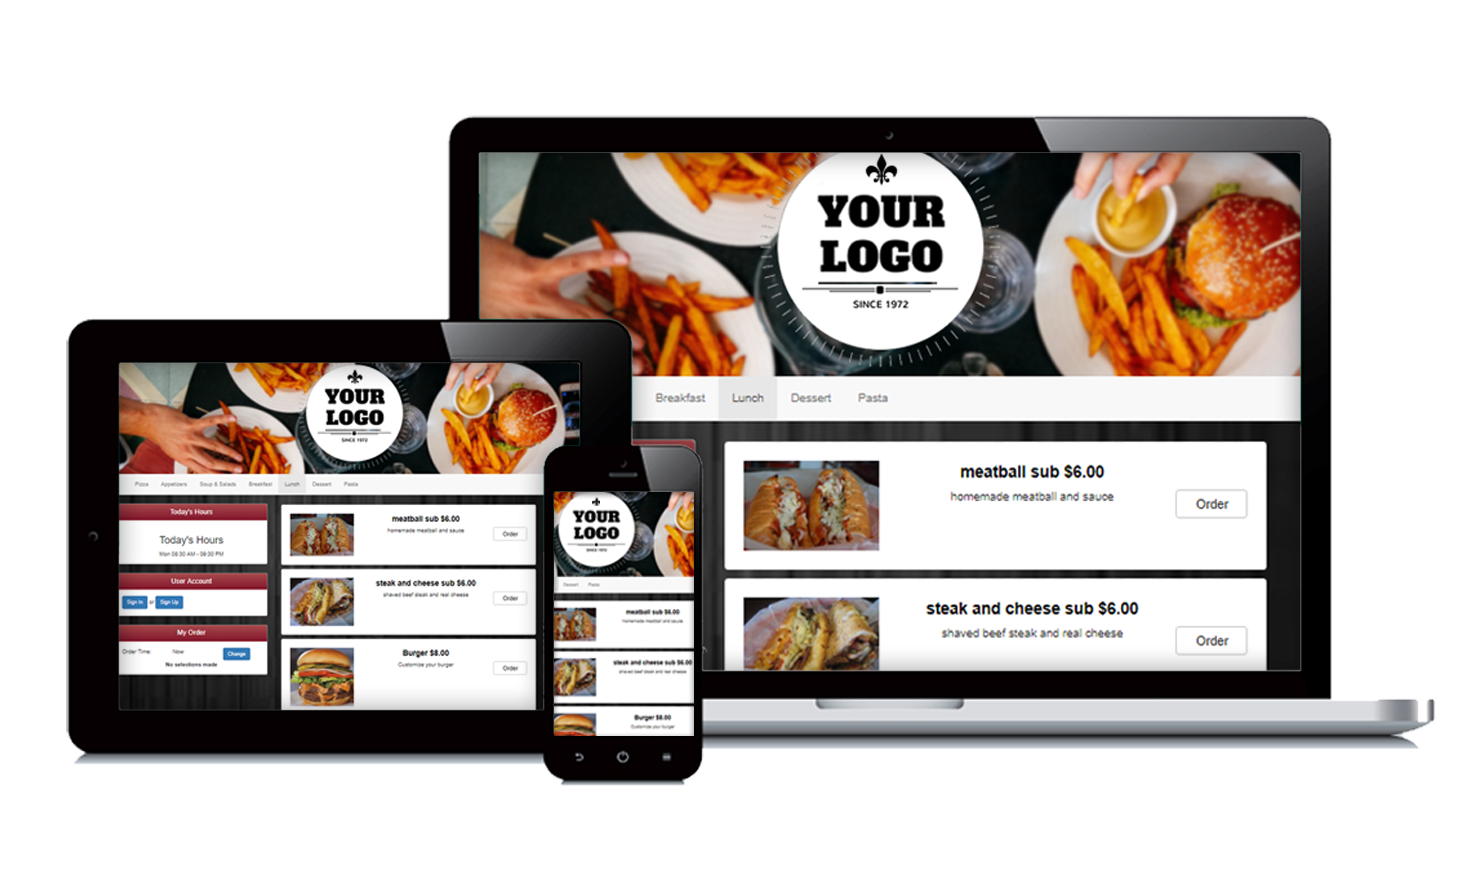 Takeout Button® mobile friendly ordering technology